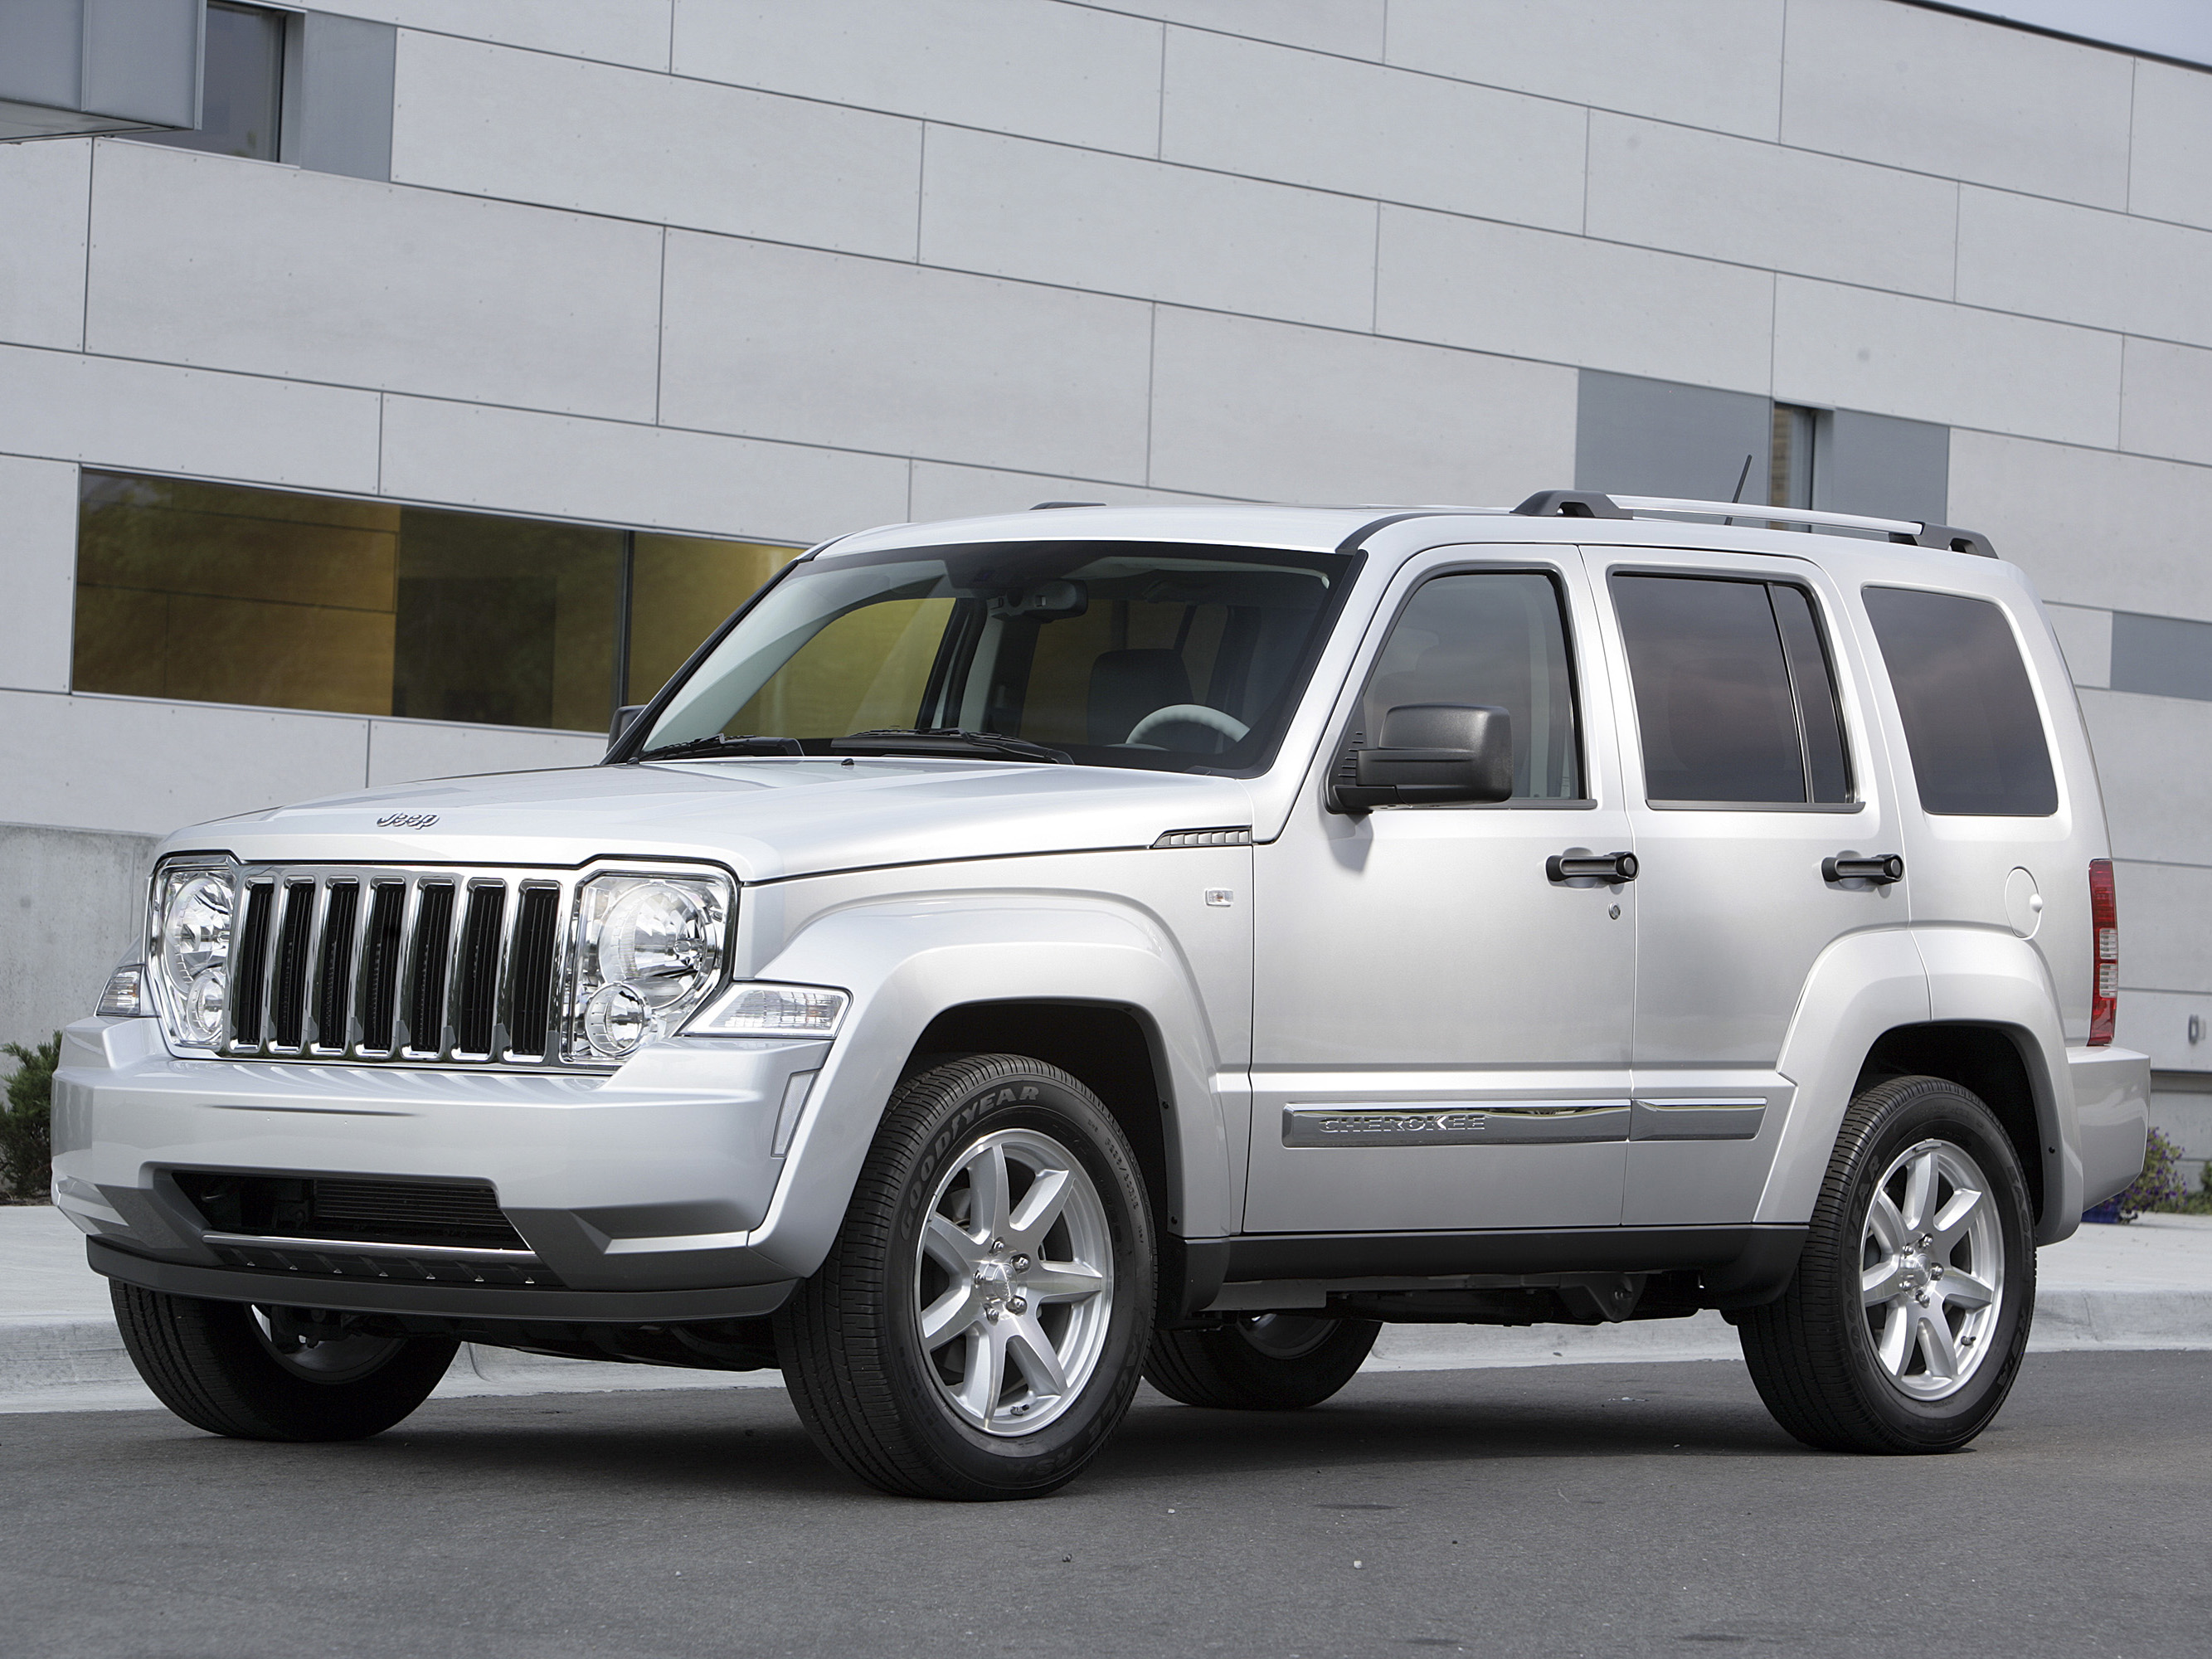 Jeep Liberty SUV 2008